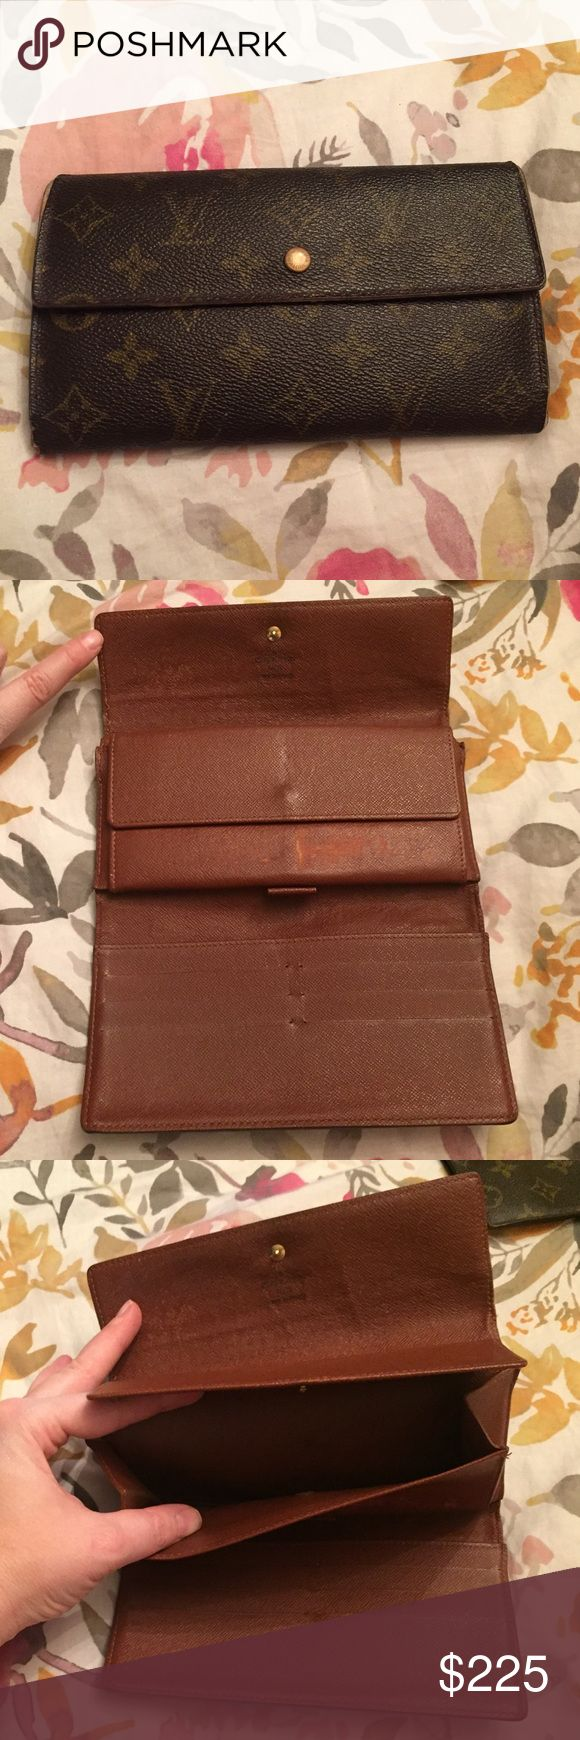 💯 auth Louis Vuitton monogram long snap wallet Lovely wallet that's great for staying organized. Guaranteed authentic! Lots of life left, with signs of wear overall as shown, but this doesn't effect use. See photos- great piece at a great price! Louis Vuitton Bags Wallets